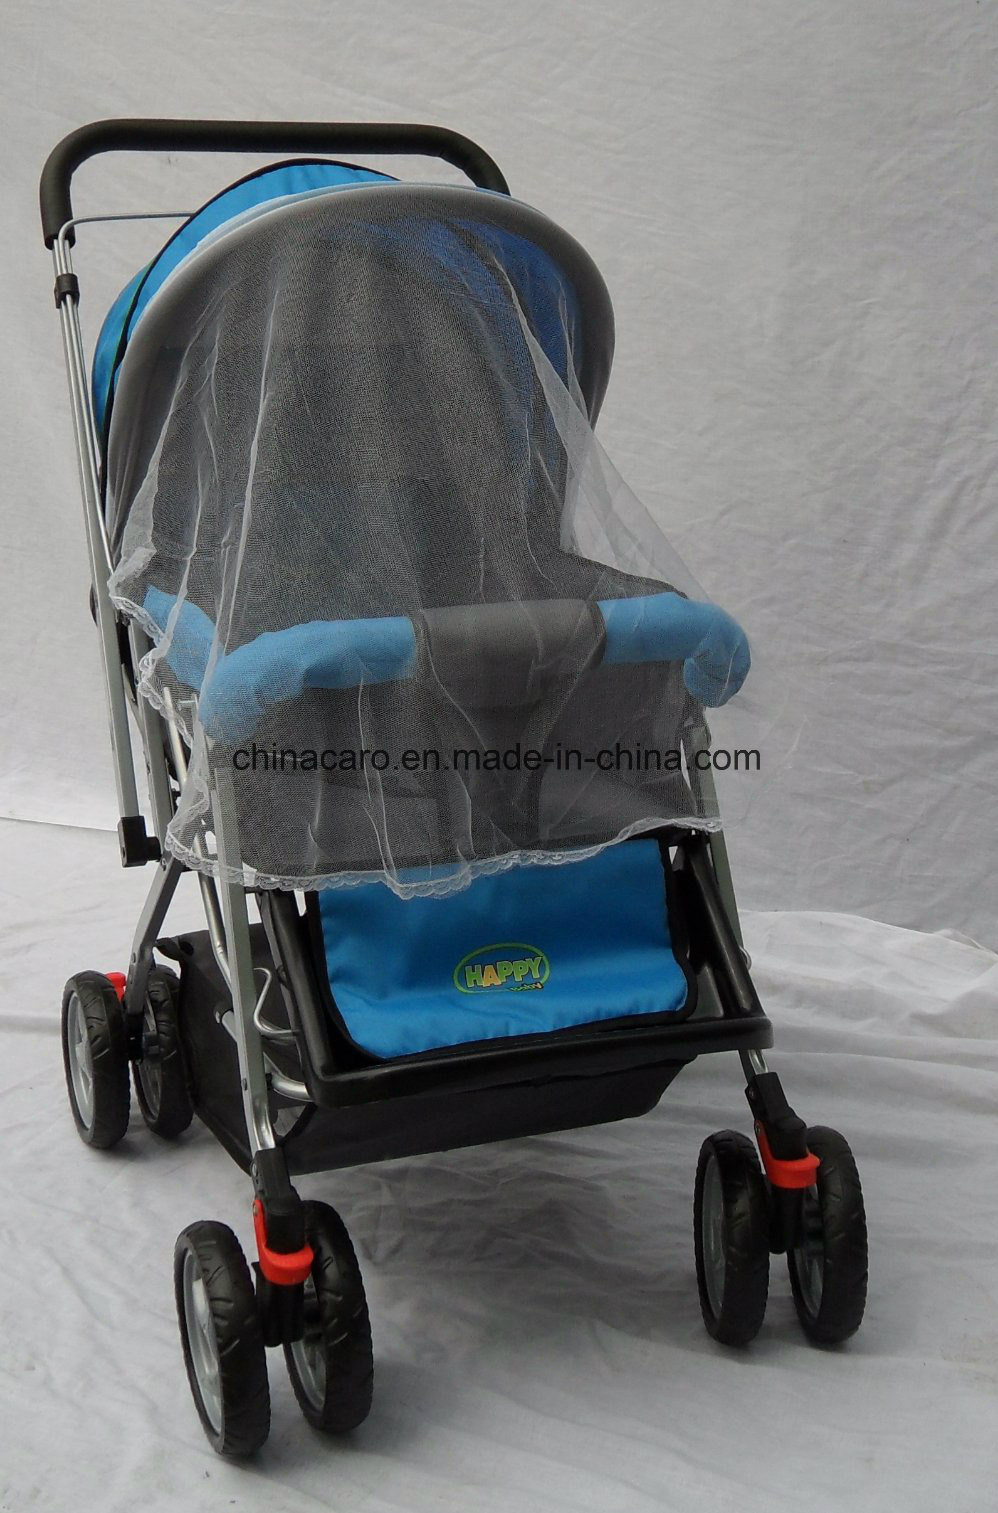 Comfortable Baby Furniture with Mosquito Net (CA-BB255)